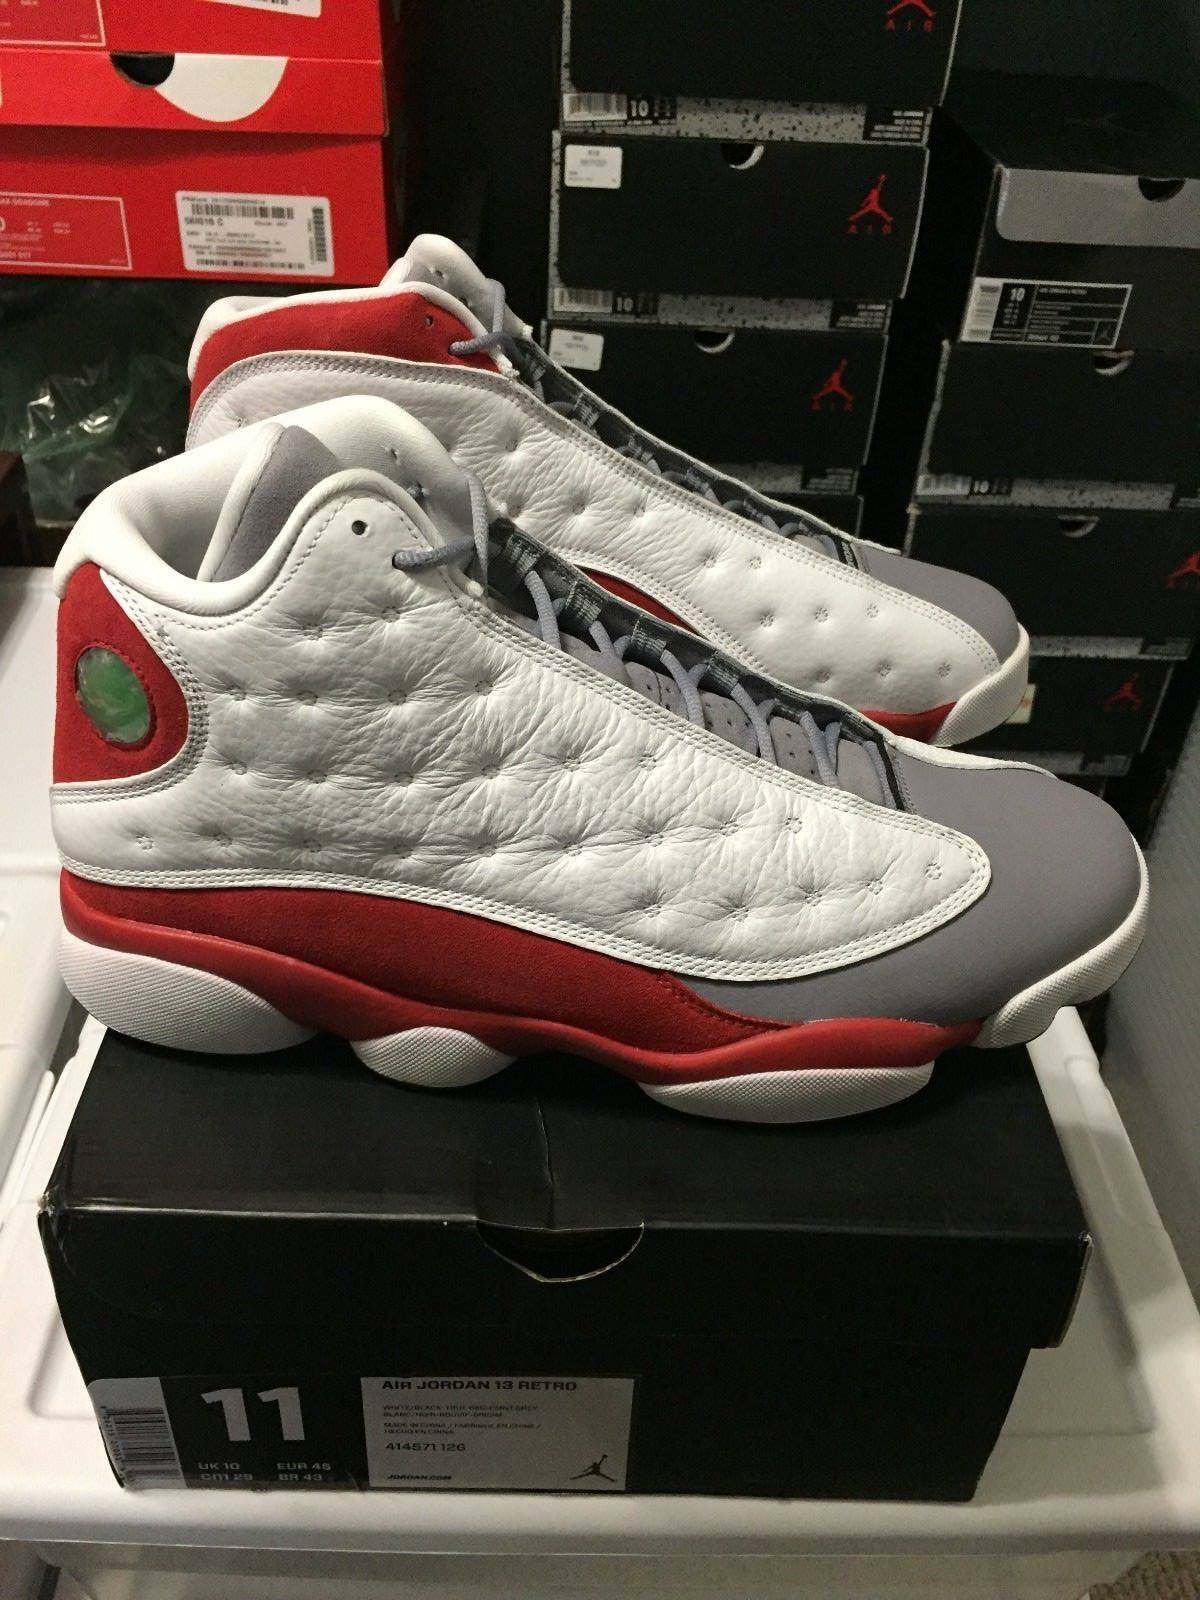 AIR JORDAN 13 RETRO GREY TOE MENS SIZE 11 DEADSTOCK